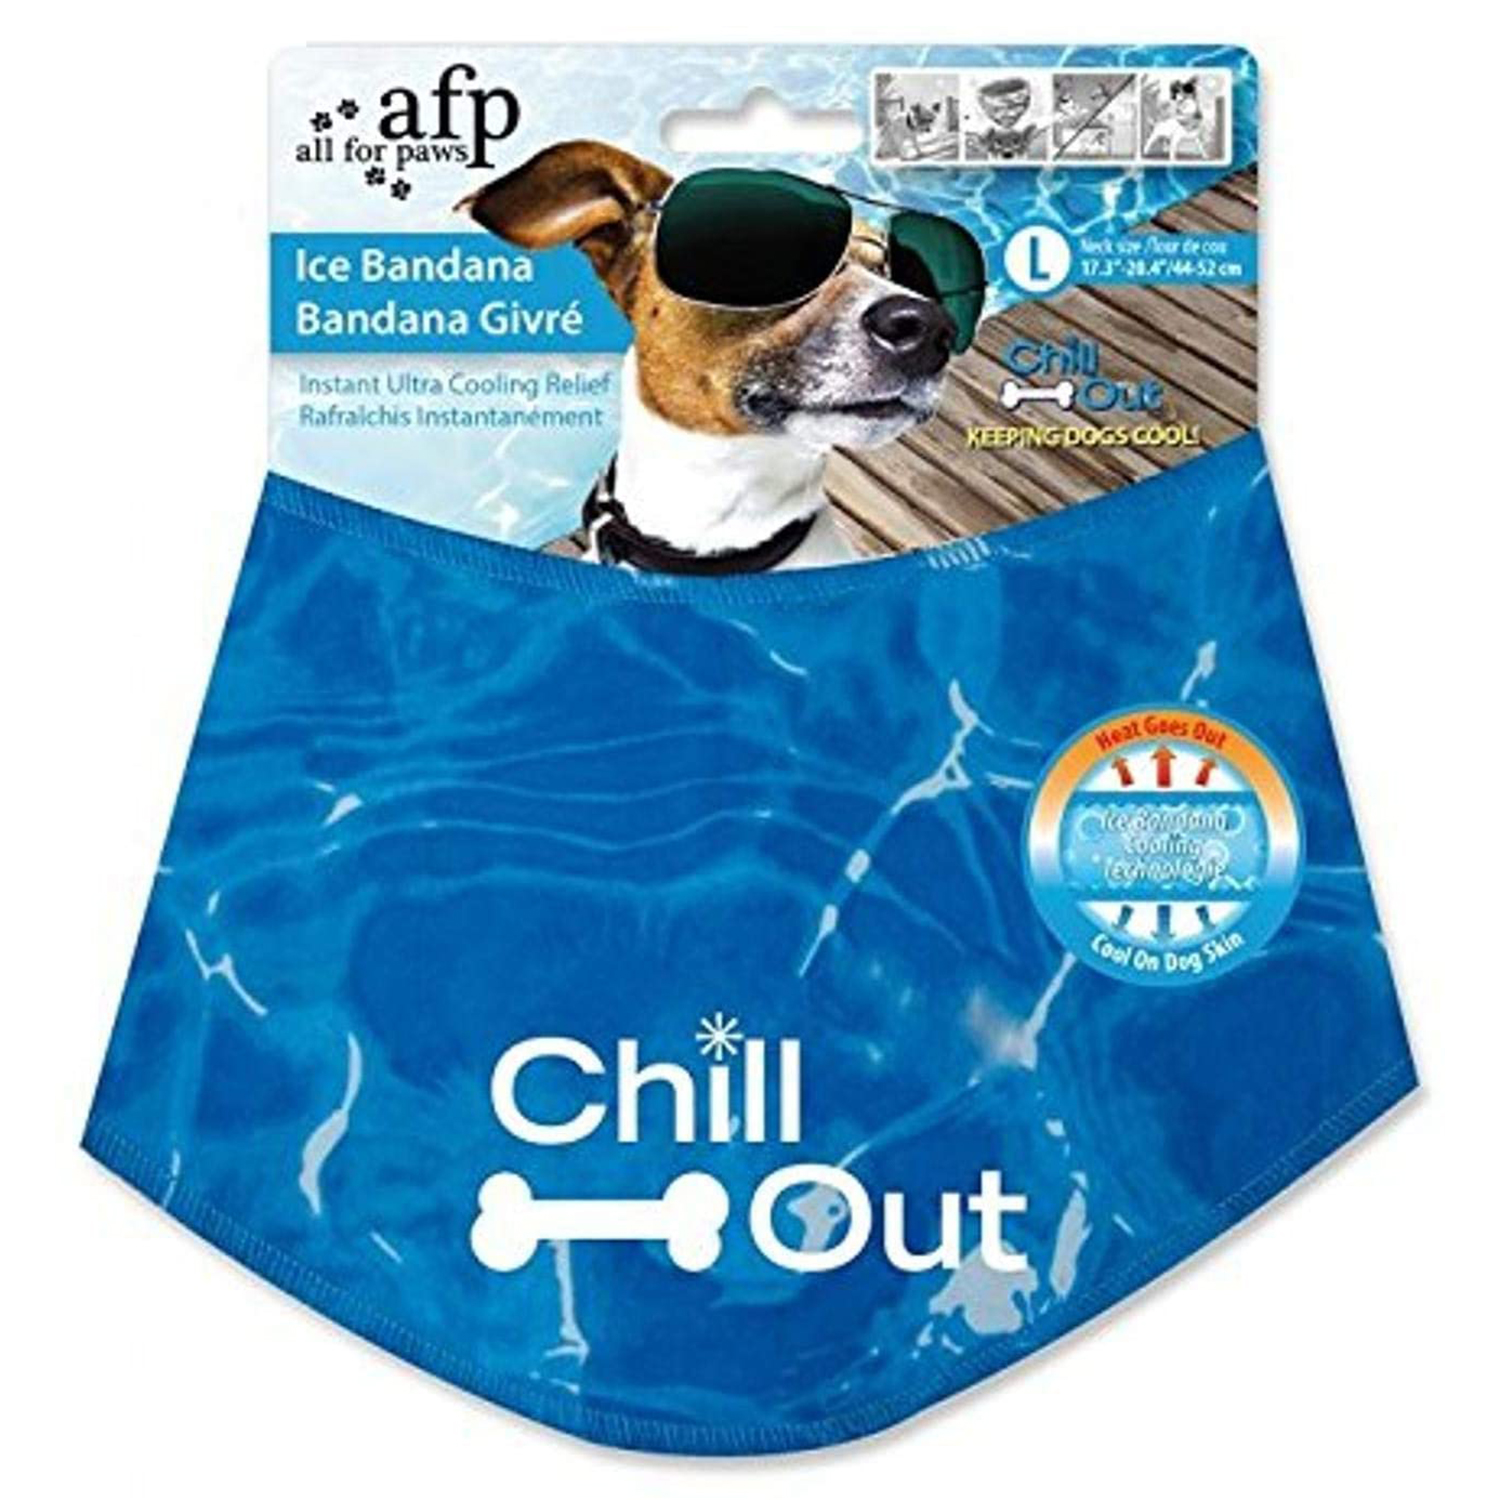 ALL FOR PAWS Chill Out Dog Ice Bandana